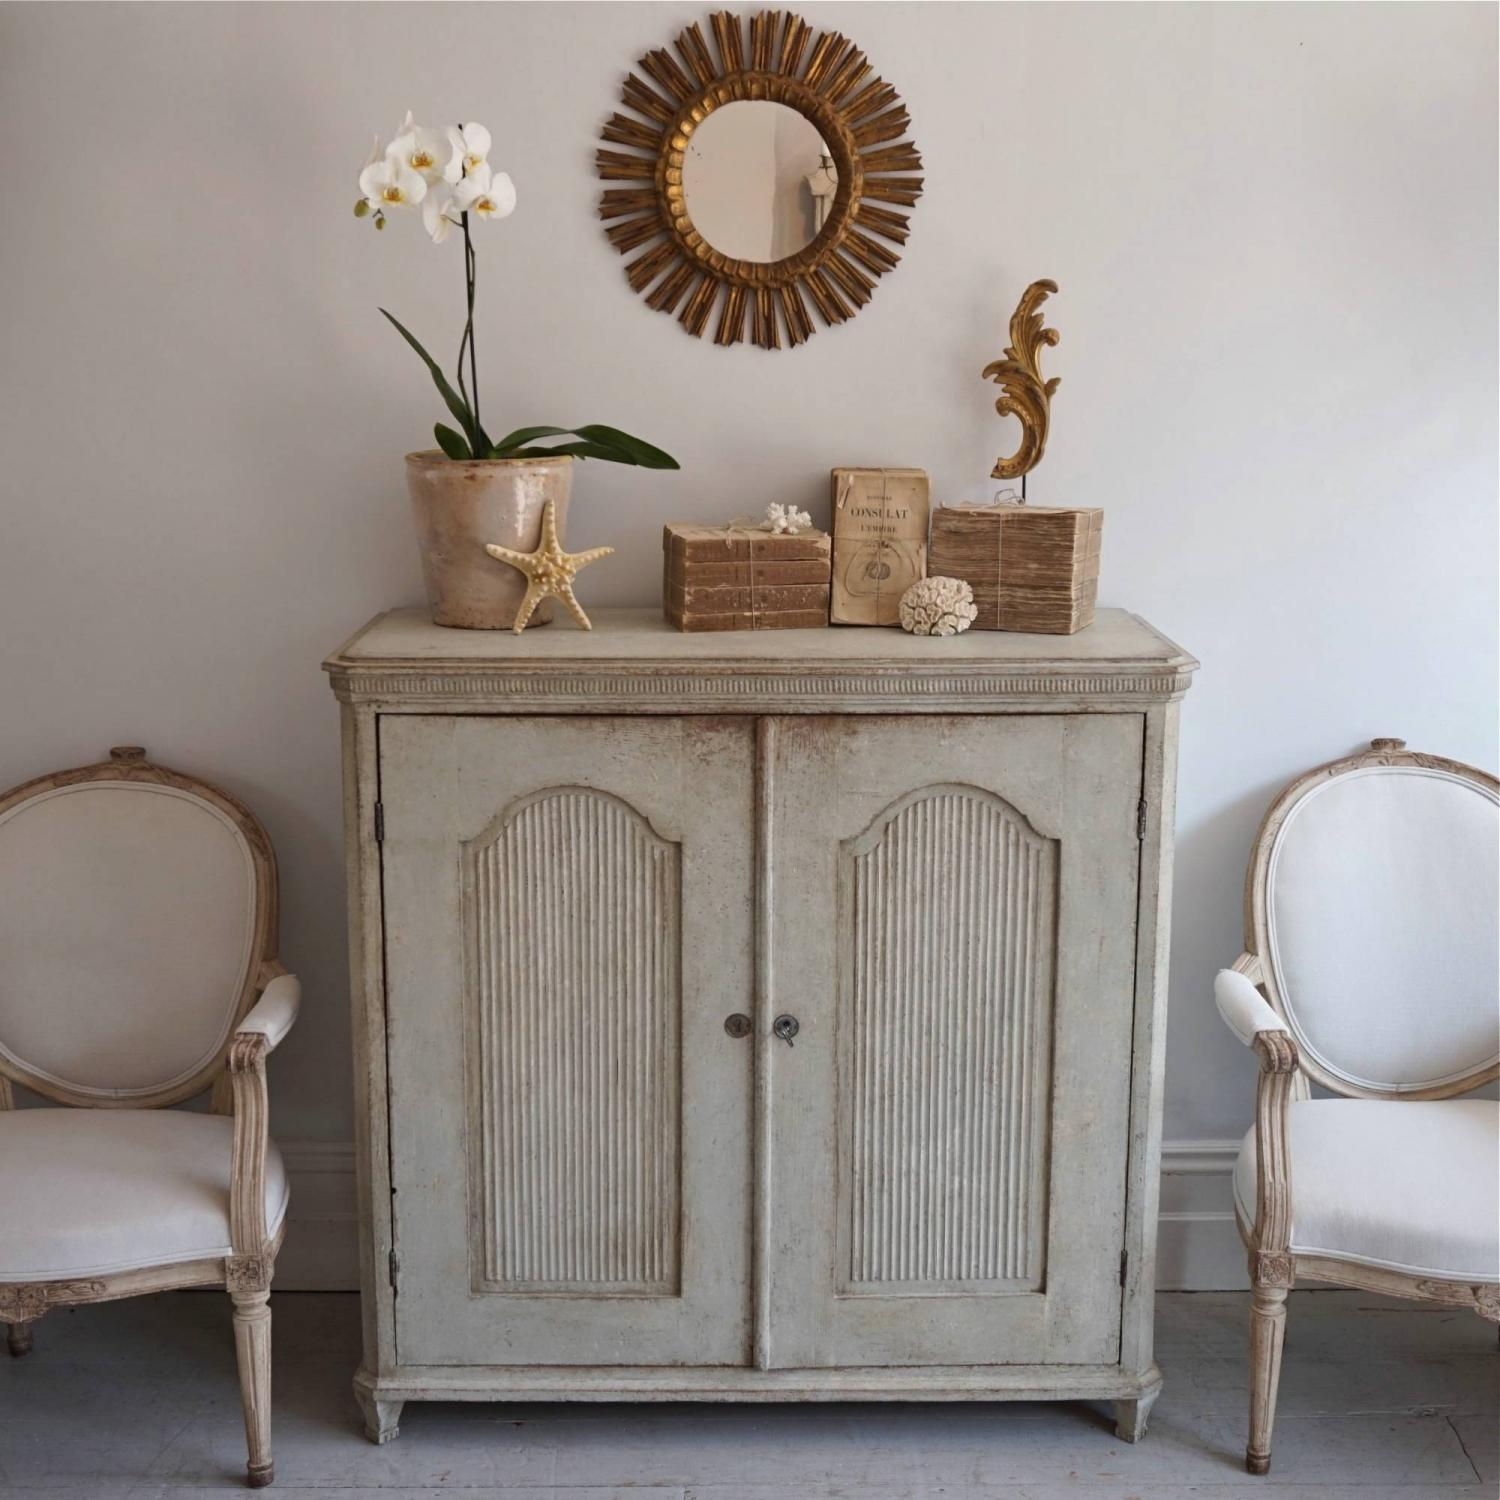 OUTSTANDING 19TH CENTURY GUSTAVIAN STYLE BUFFET